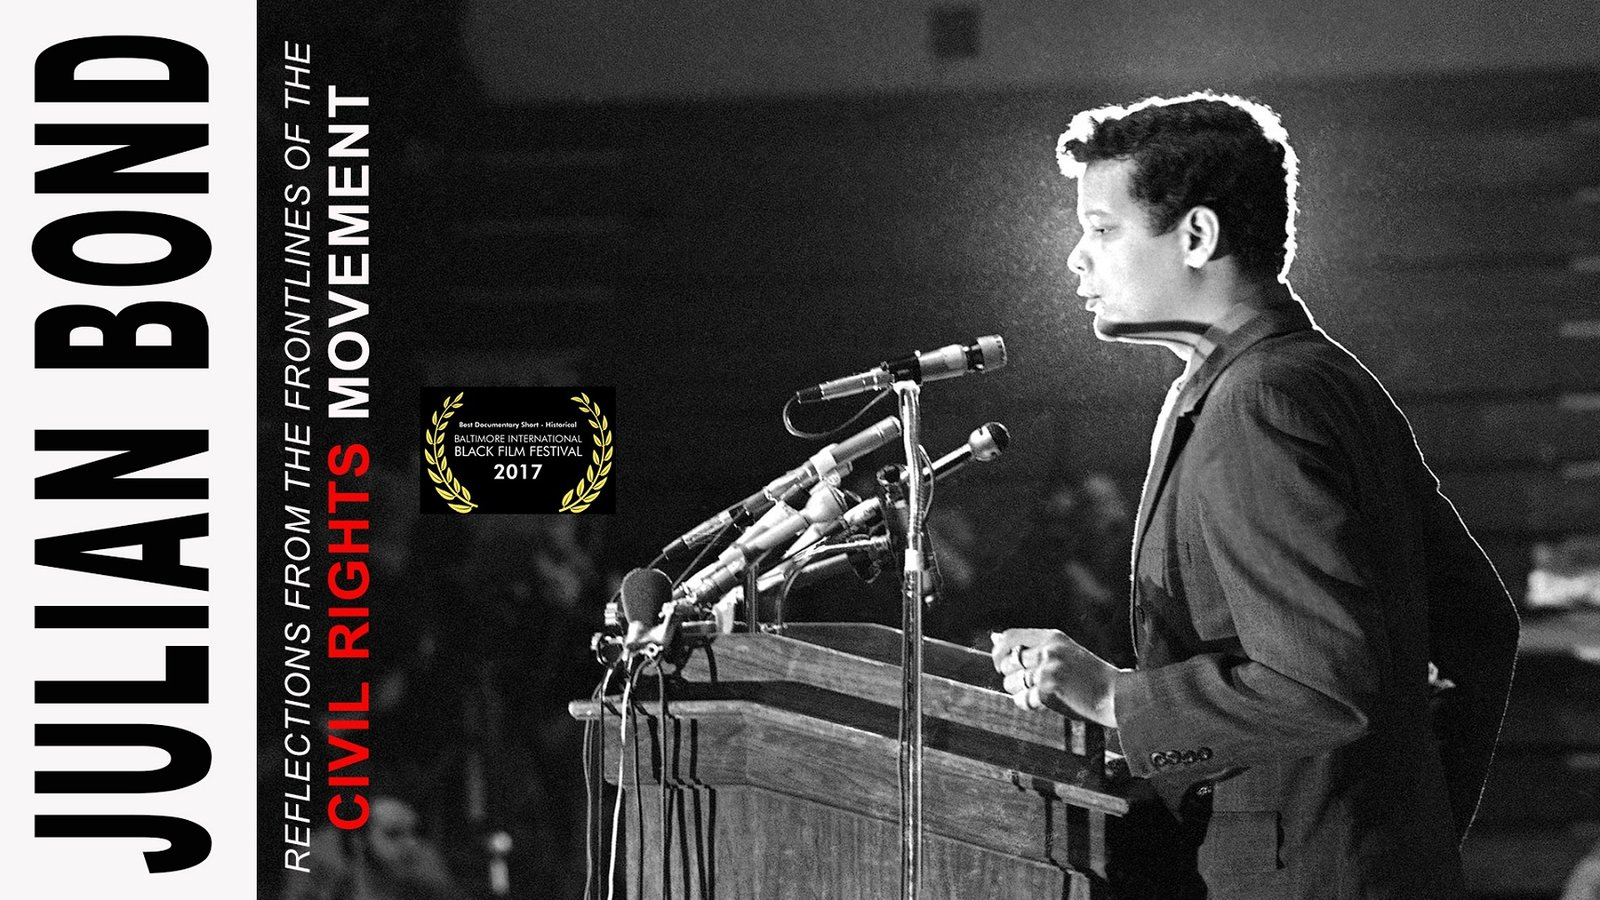 Julian Bond - Reflections from the Frontlines of the Civil Rights Movement